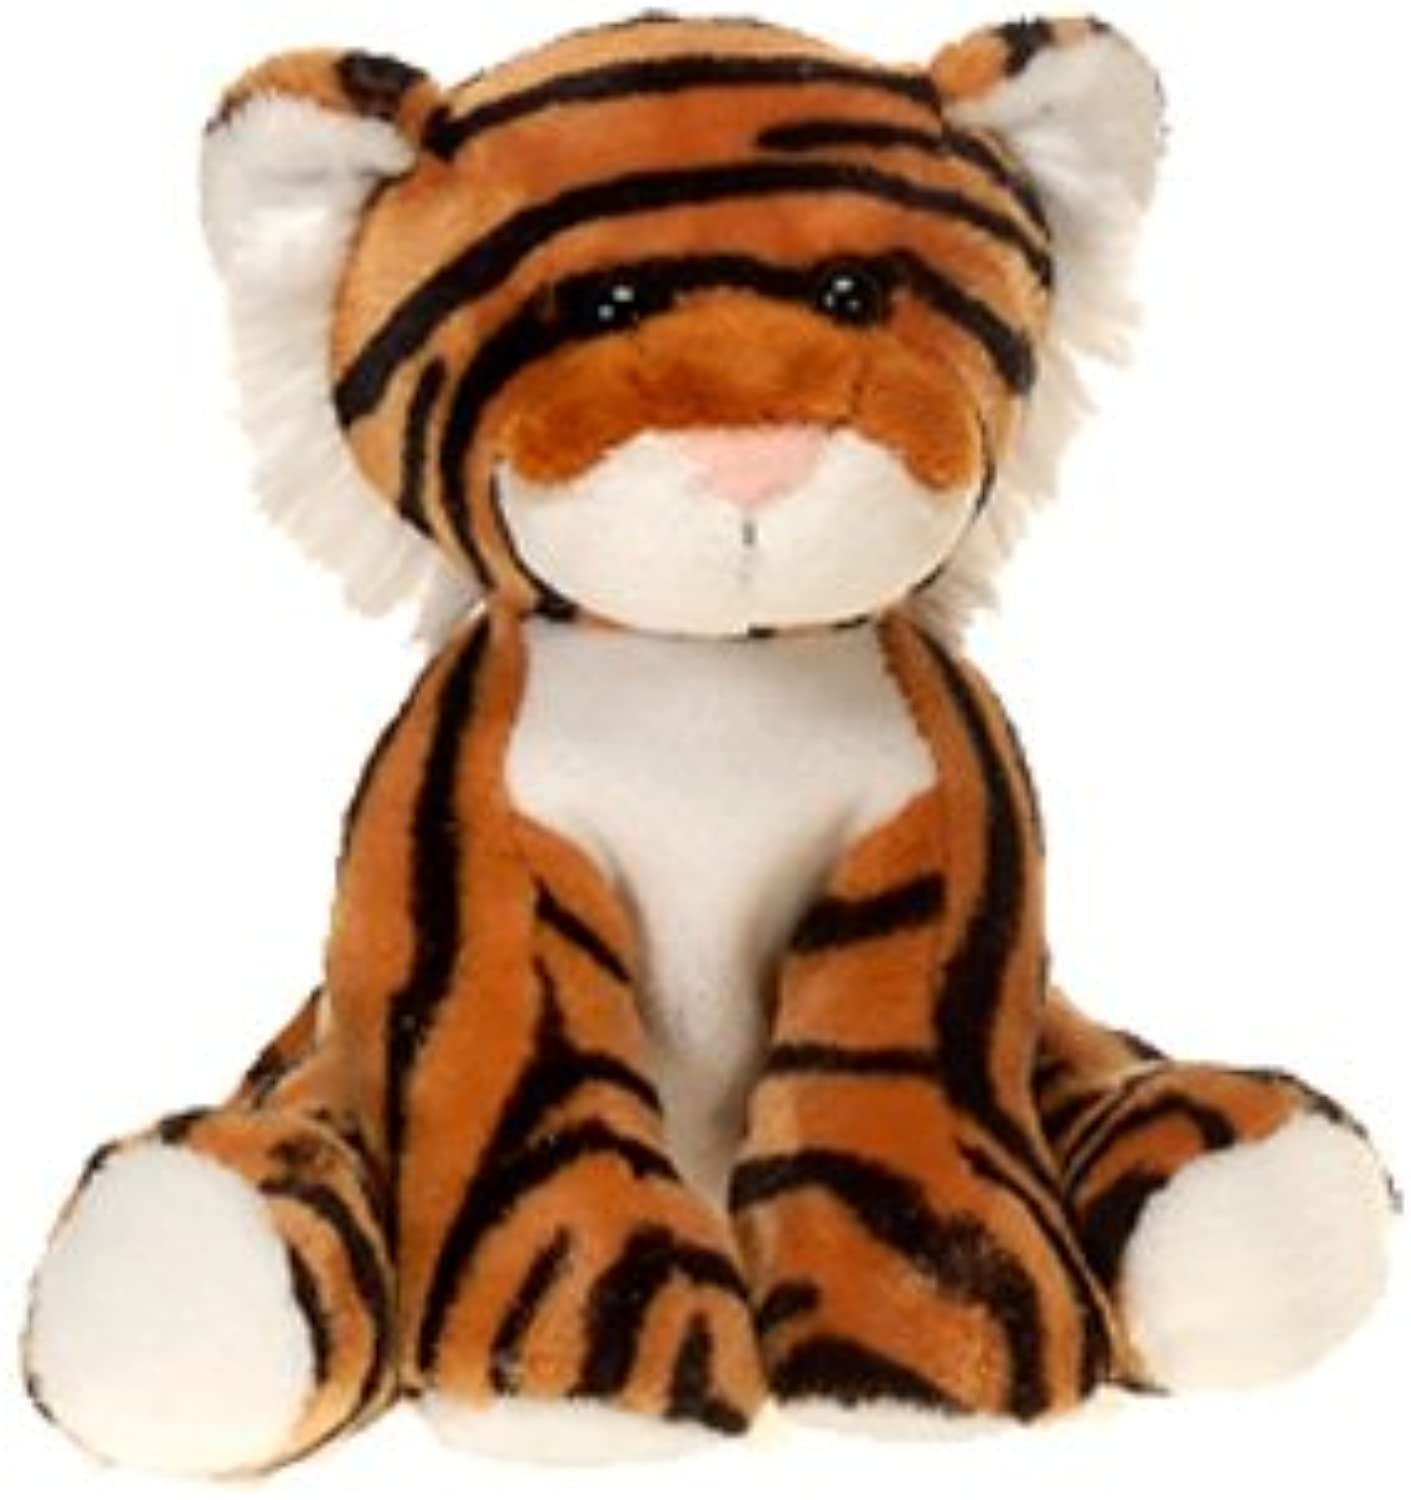 Comfies Bean Bag Tiger Large 14.5 by Fiesta